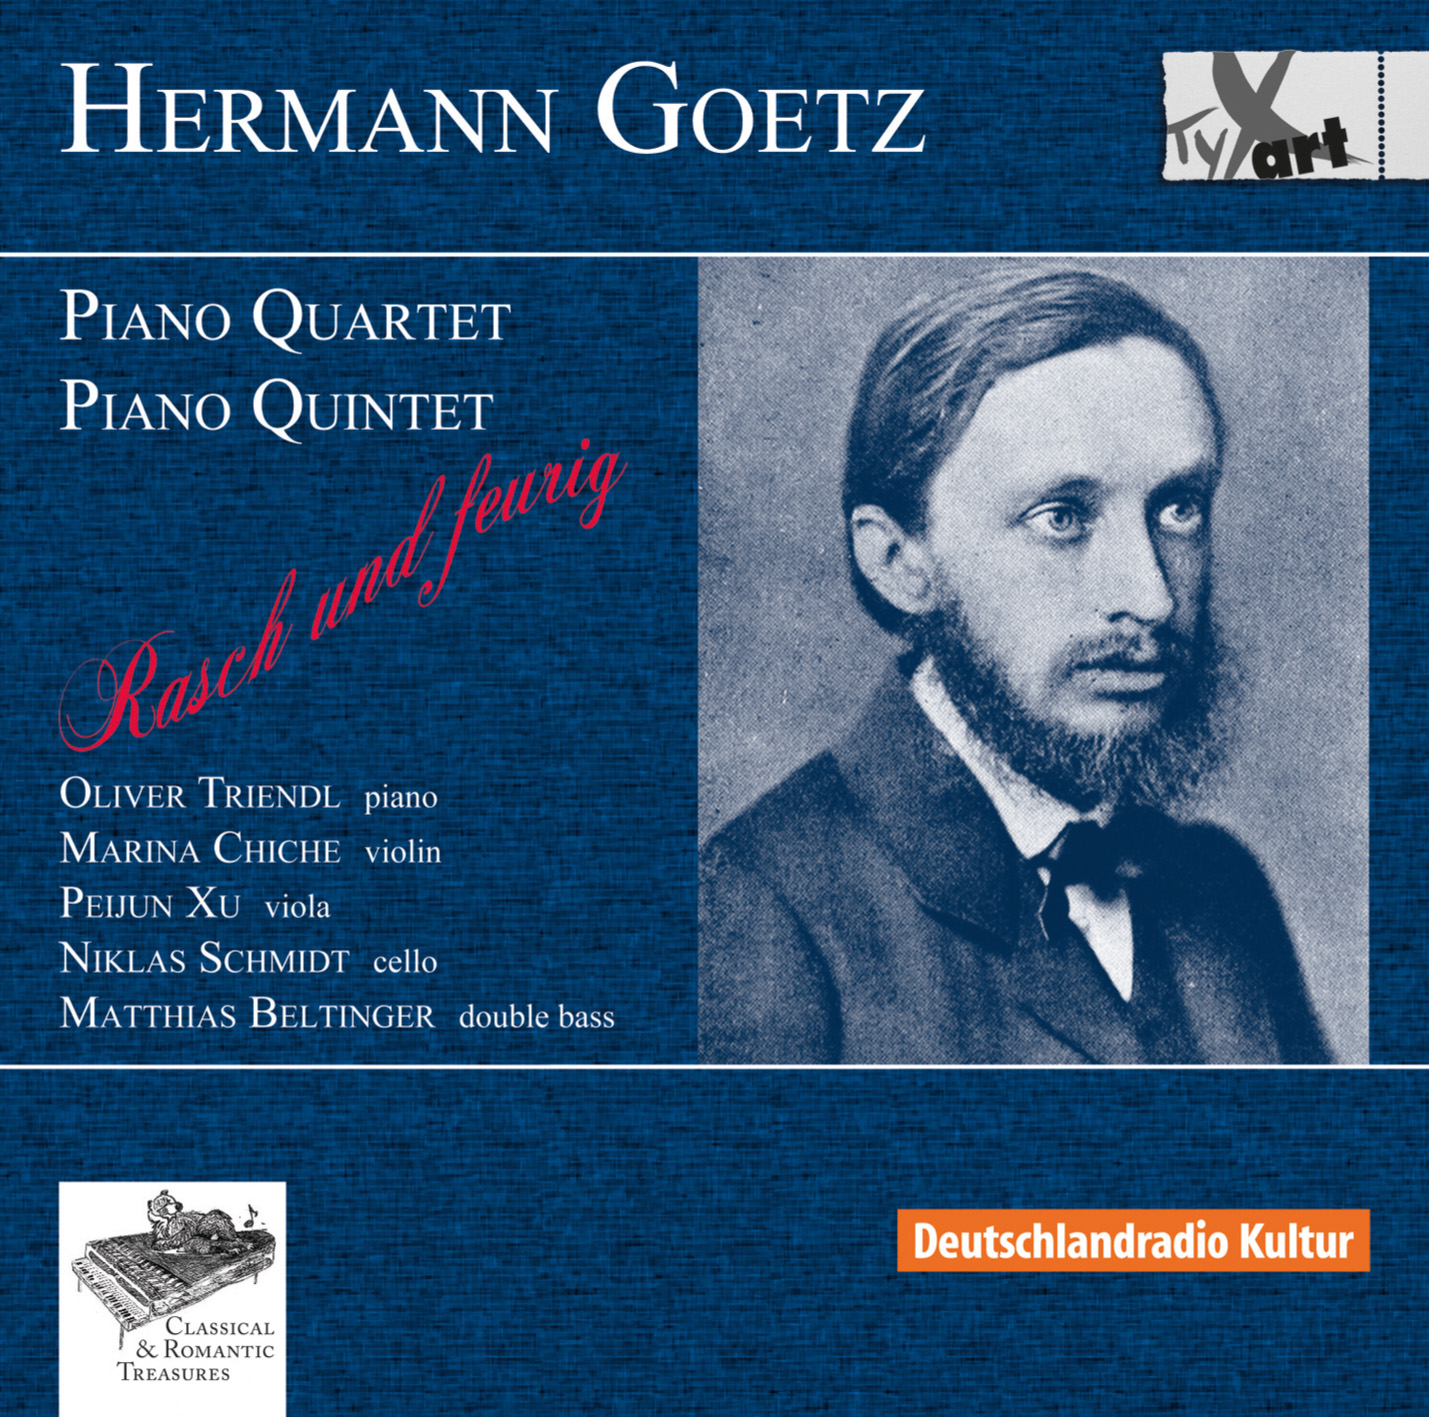 Hermann Goetz: String Quartet and String Quintet